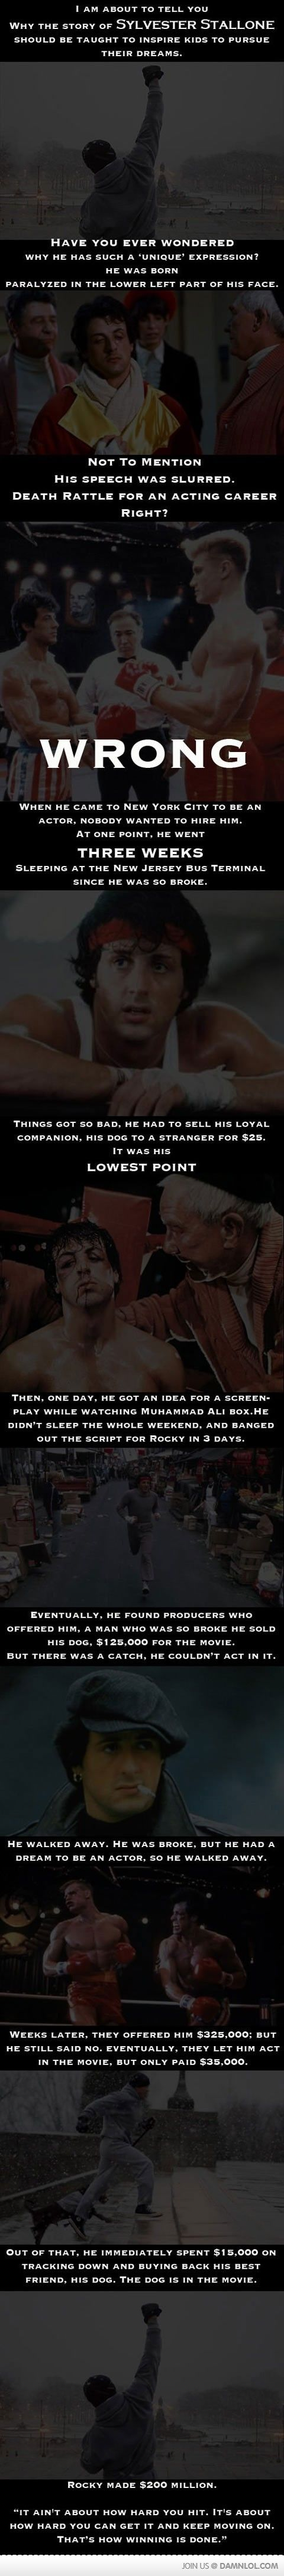 A Little Story About Sylvester Stallone